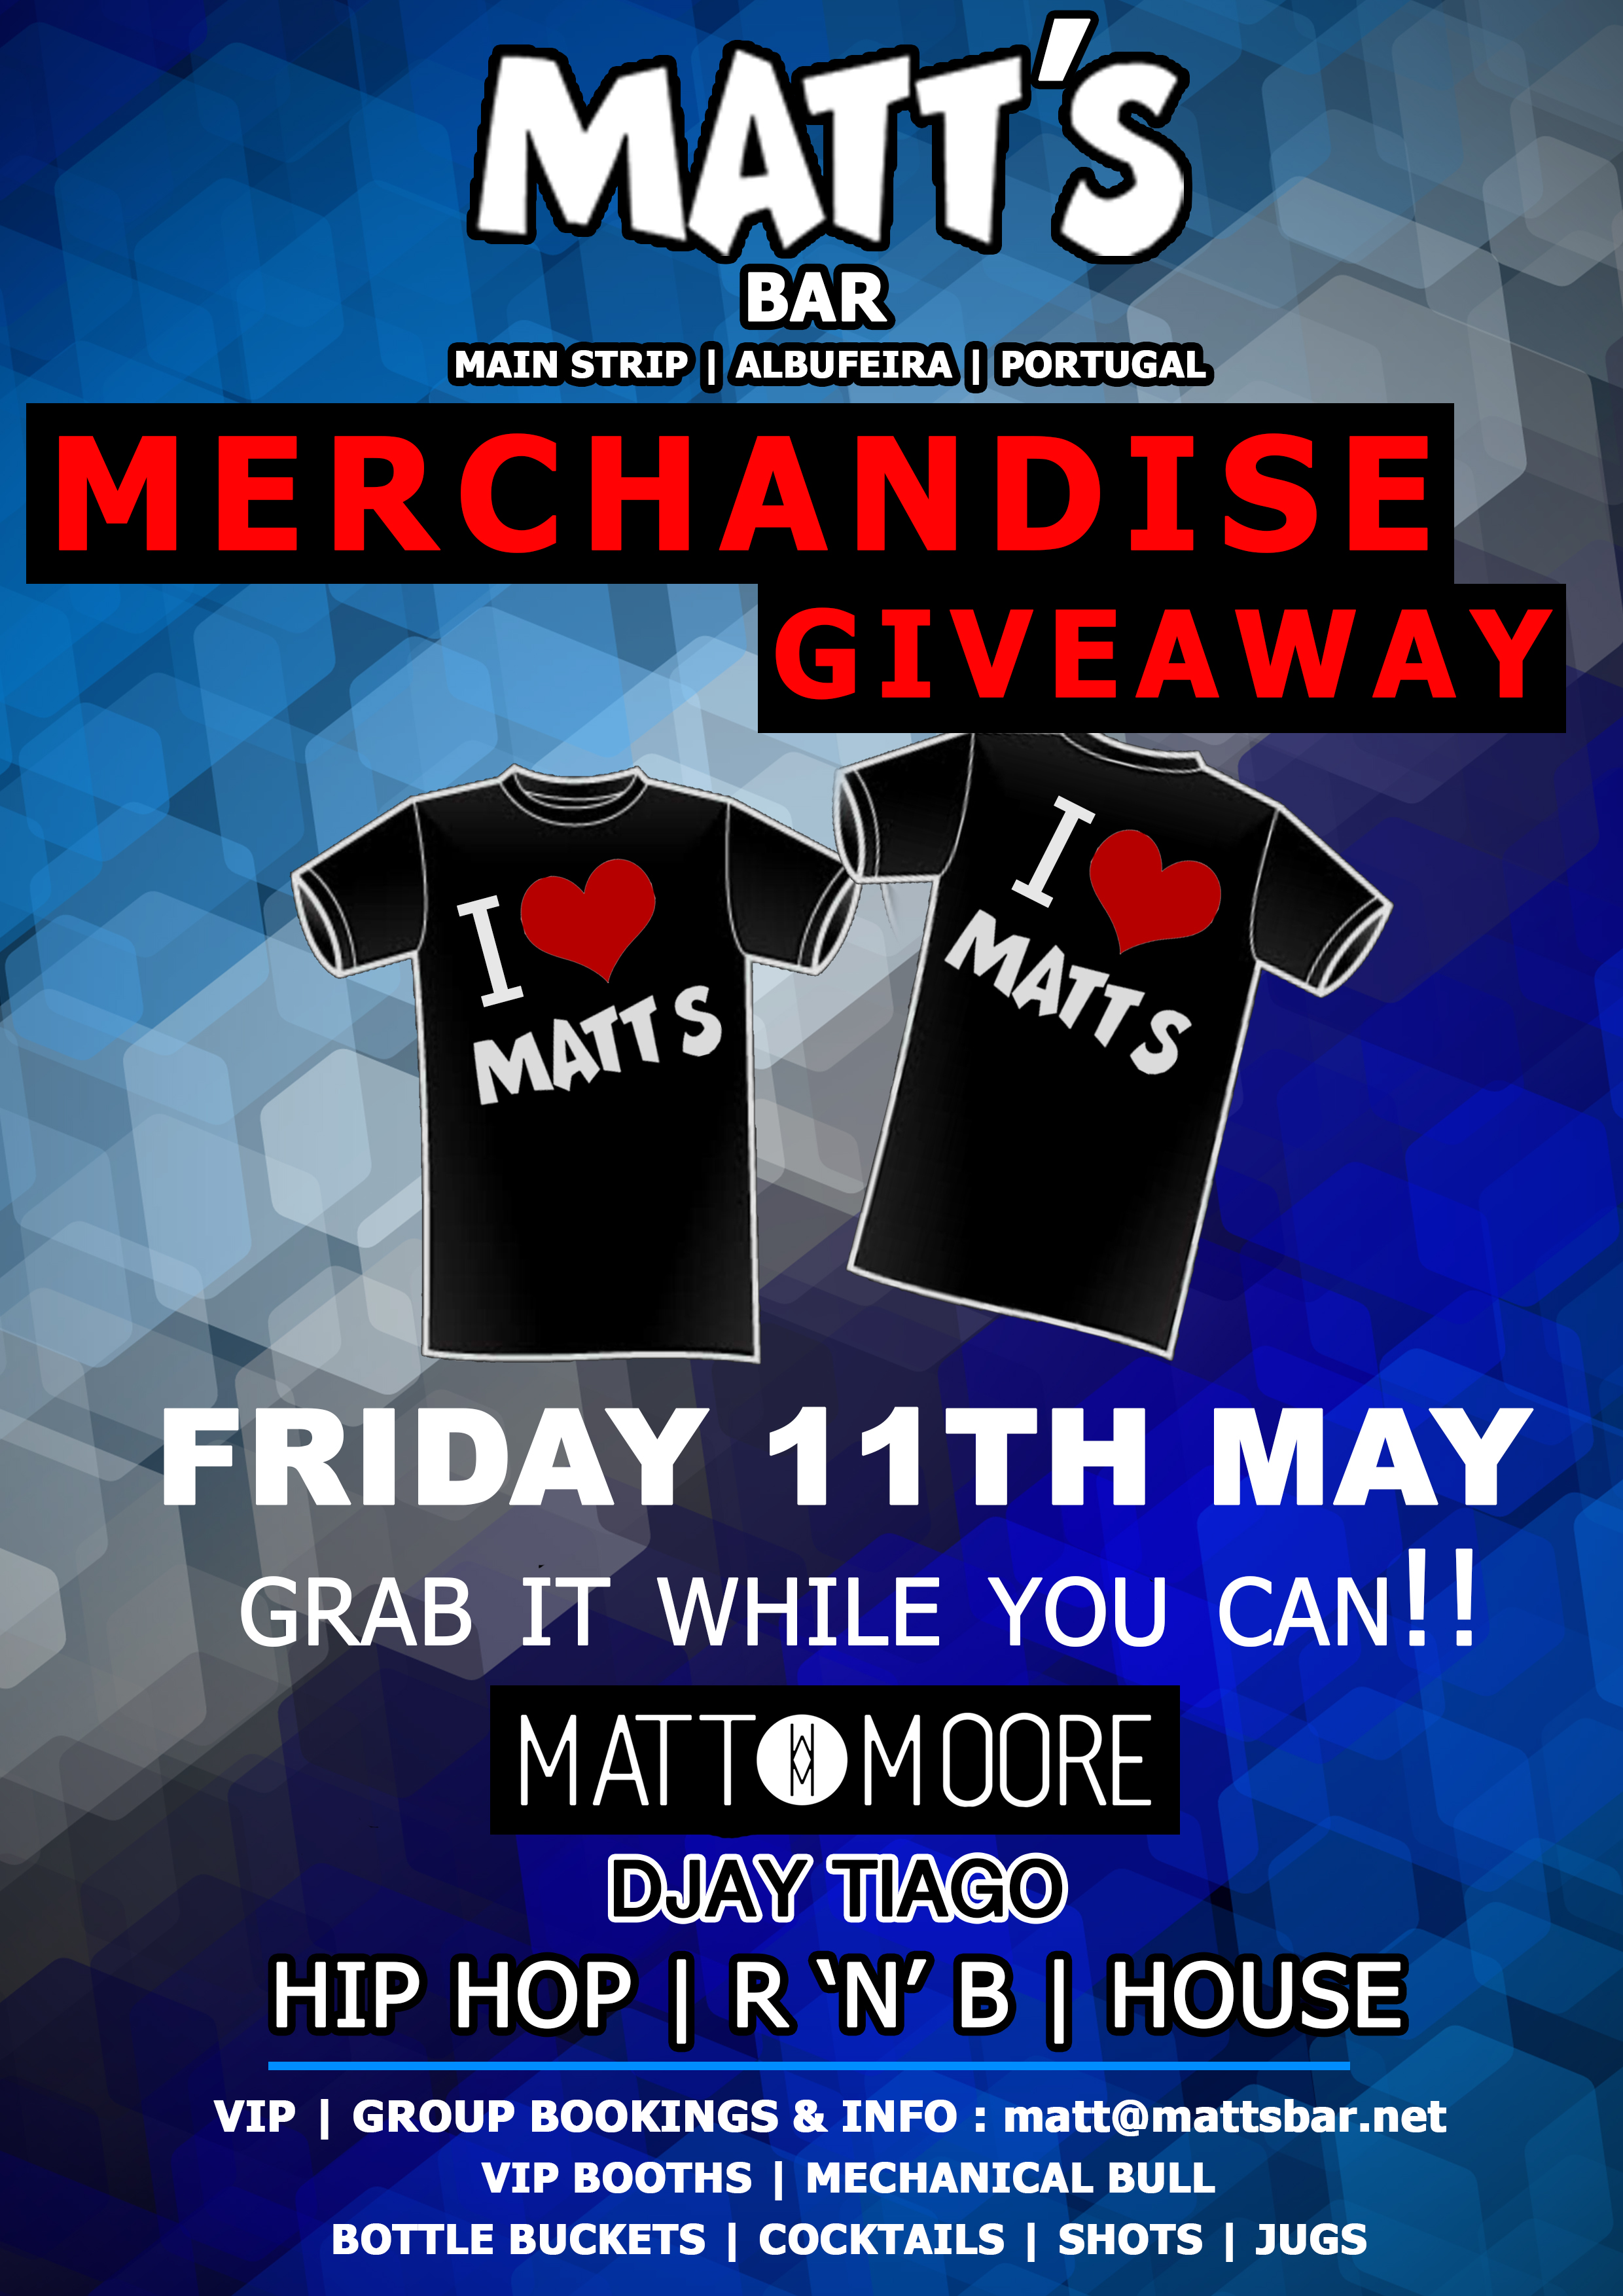 MATT'S BAR – THE MERCHANDISE GIVEAWAY